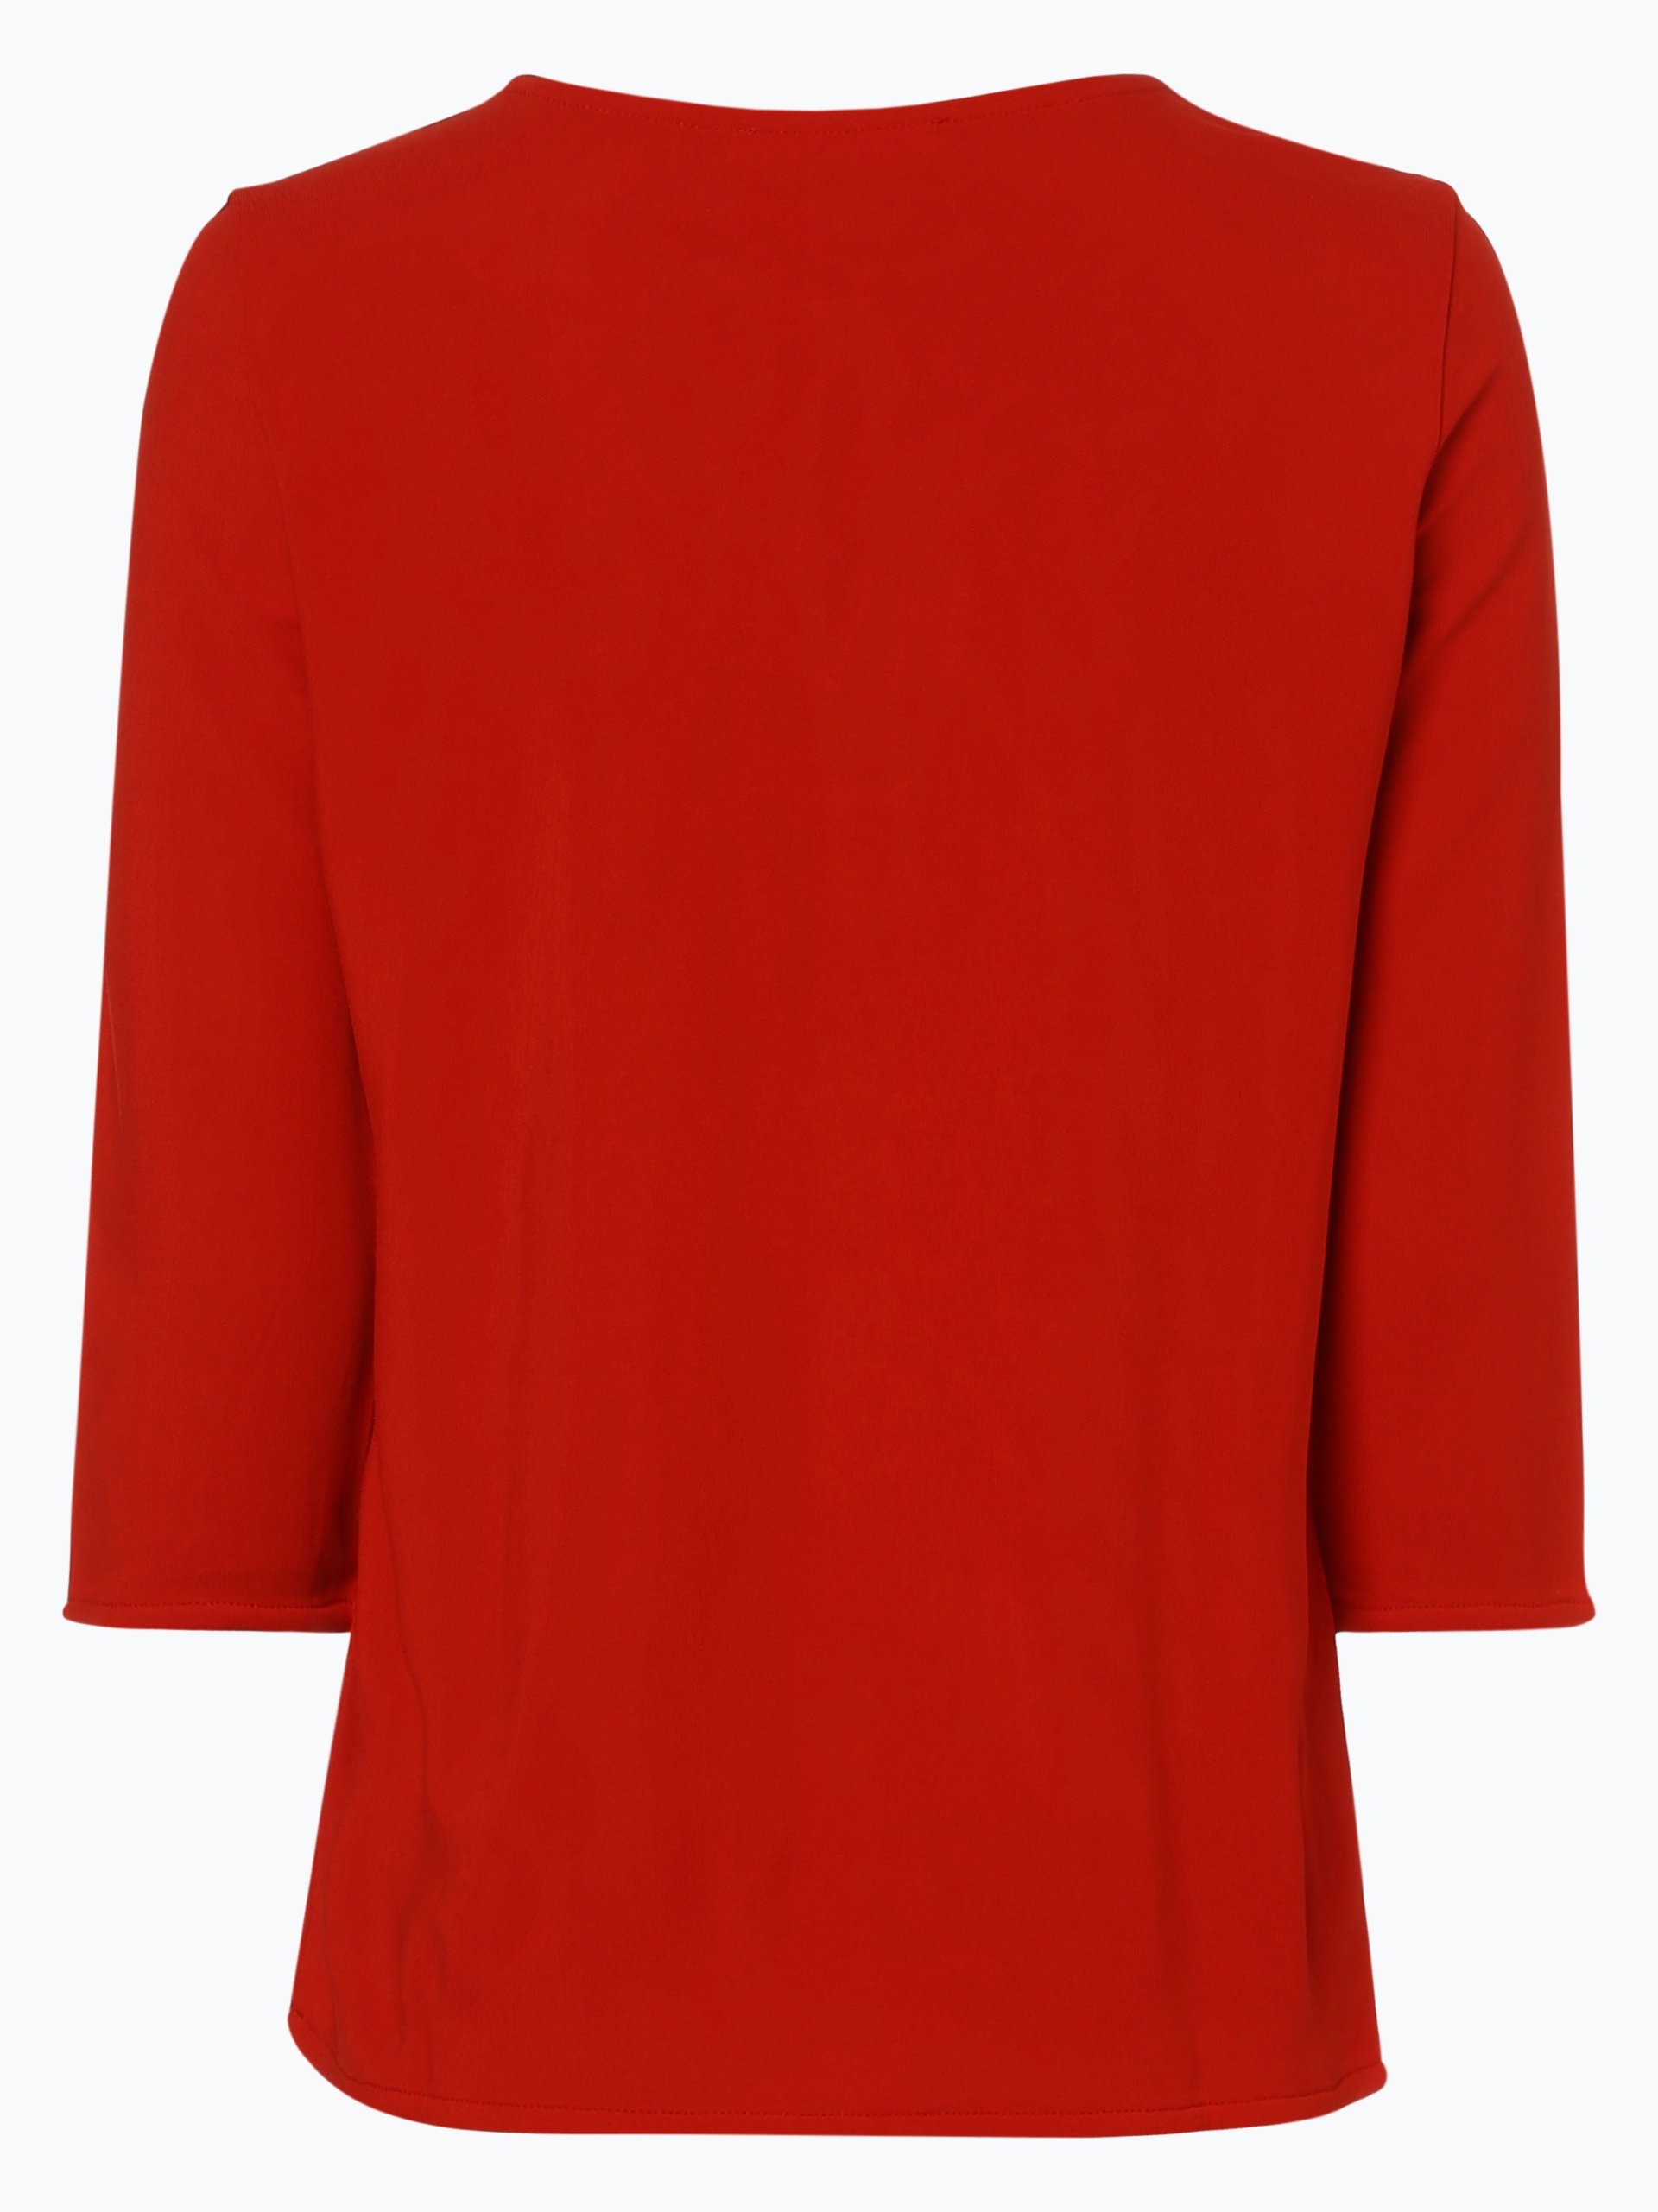 BOSS Damen Shirt - Epina